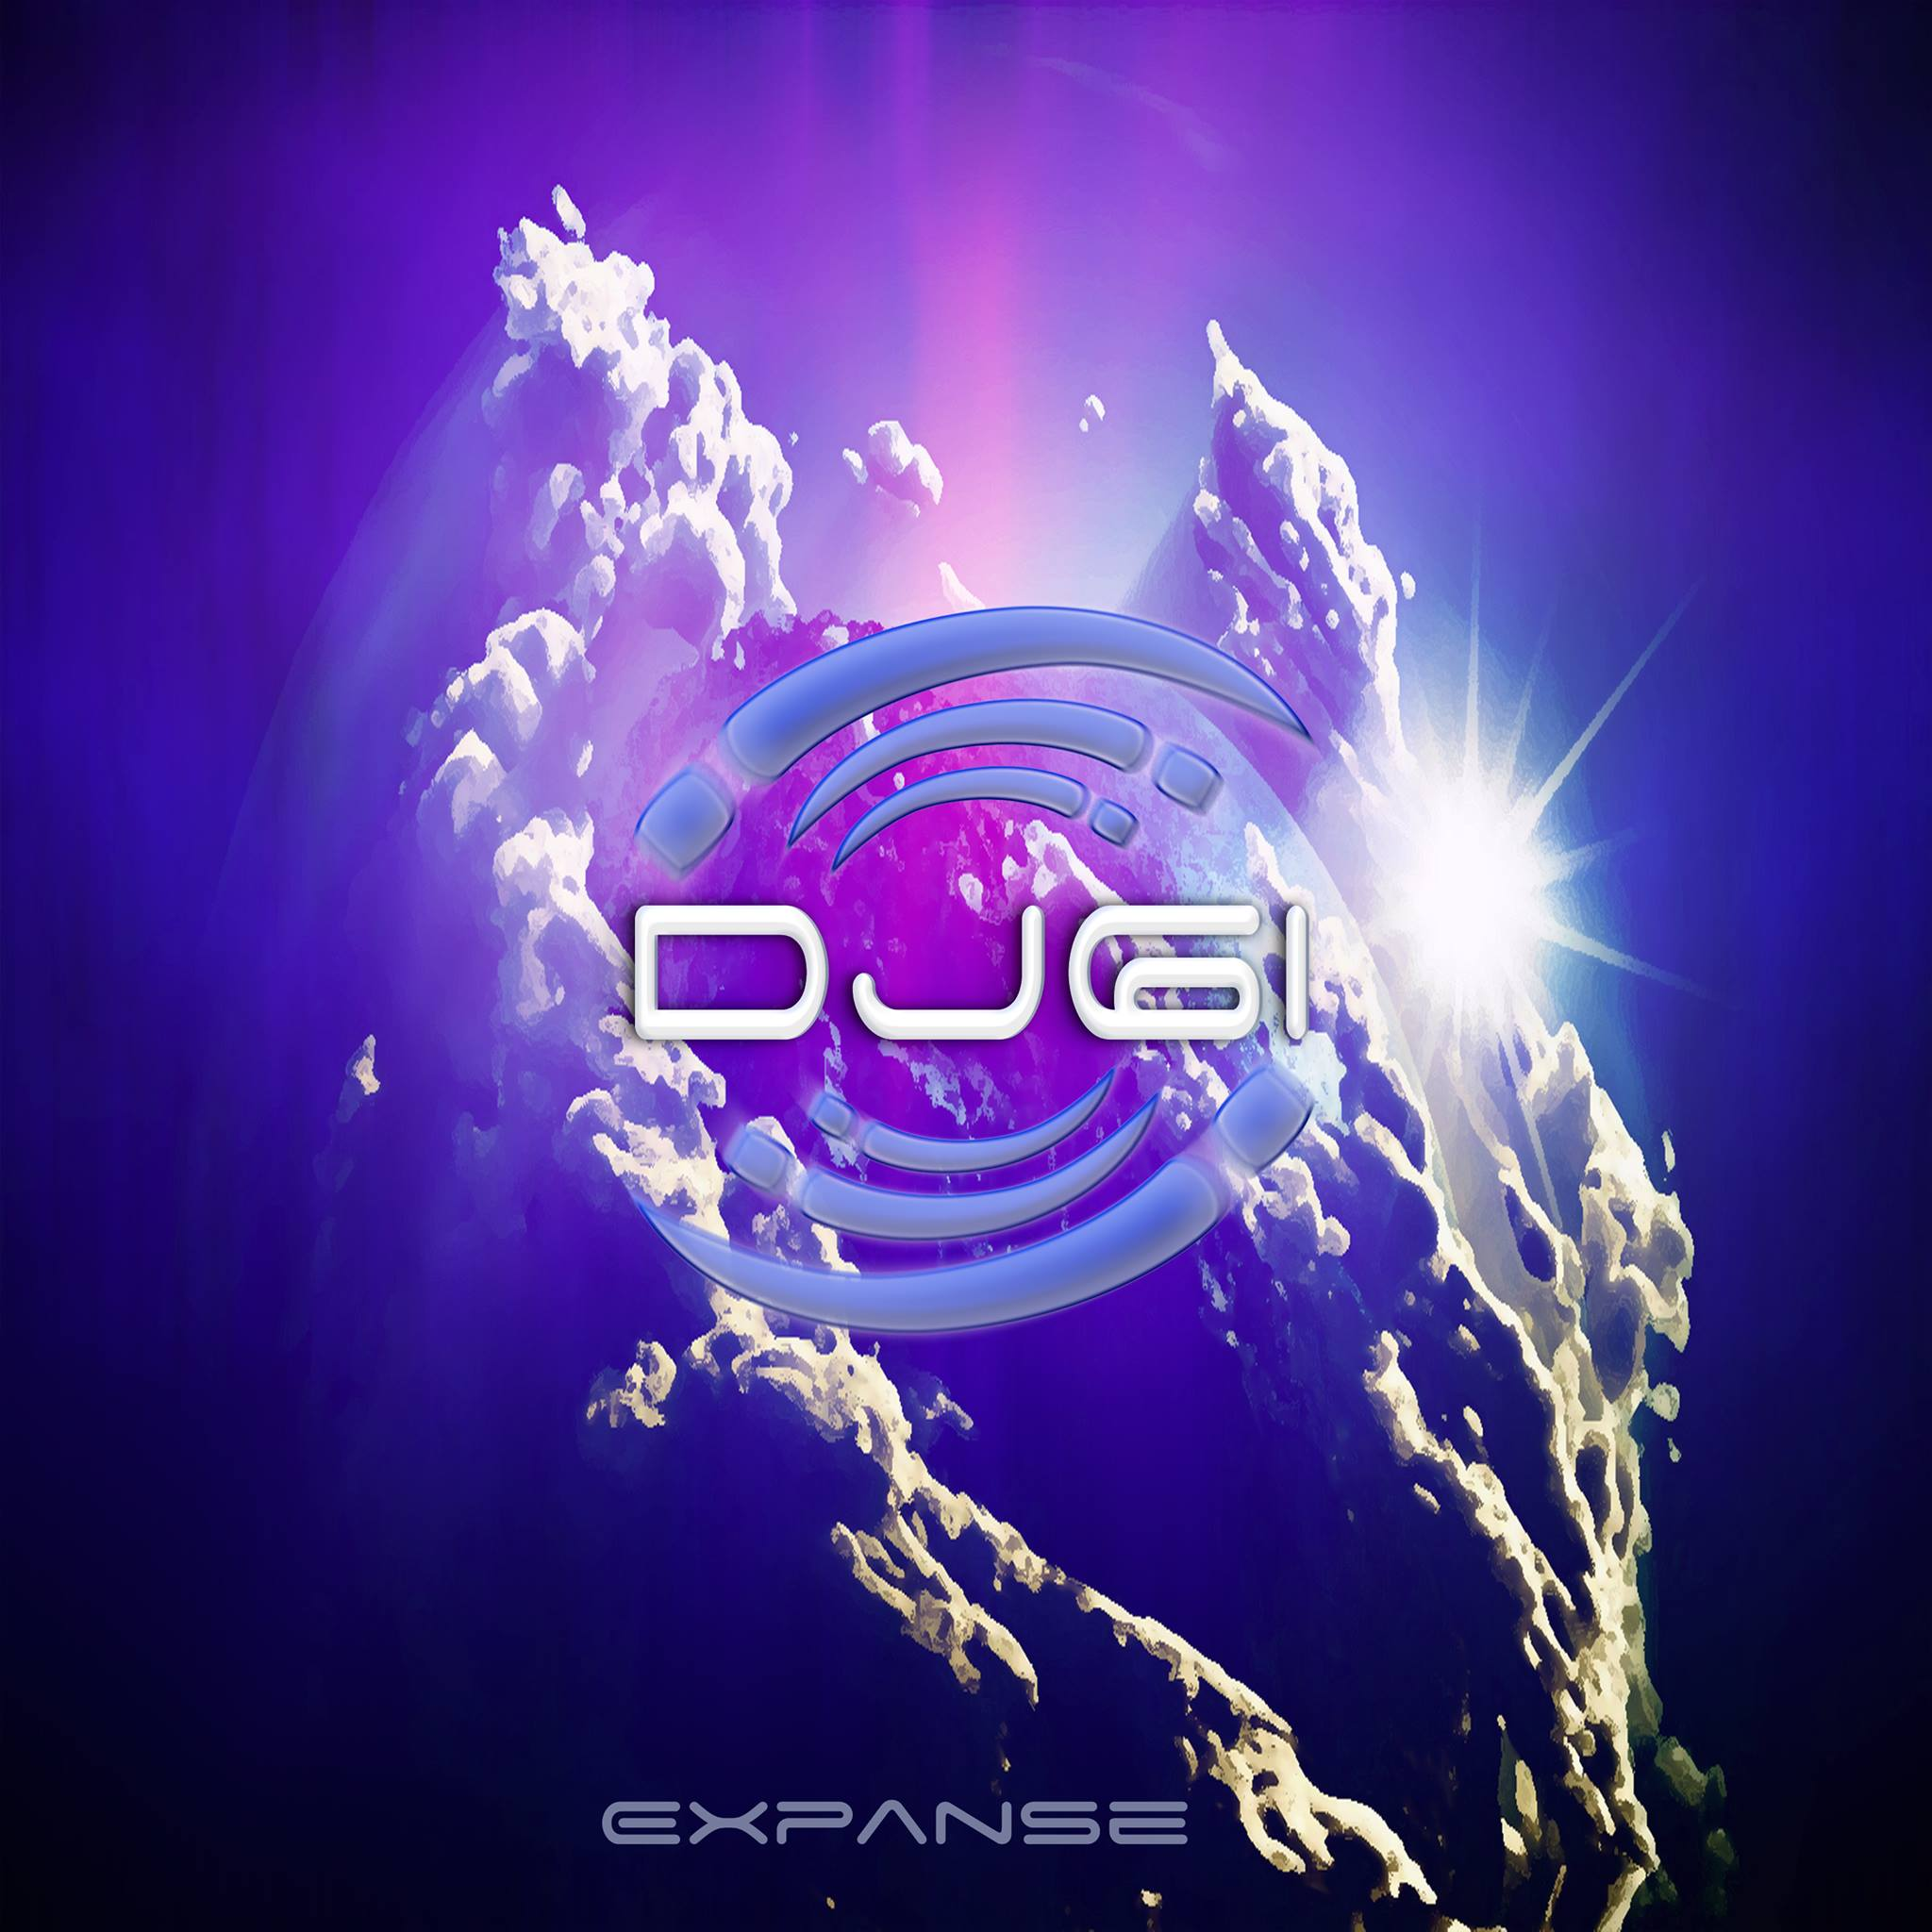 purple image for DJ6i's albume expanse